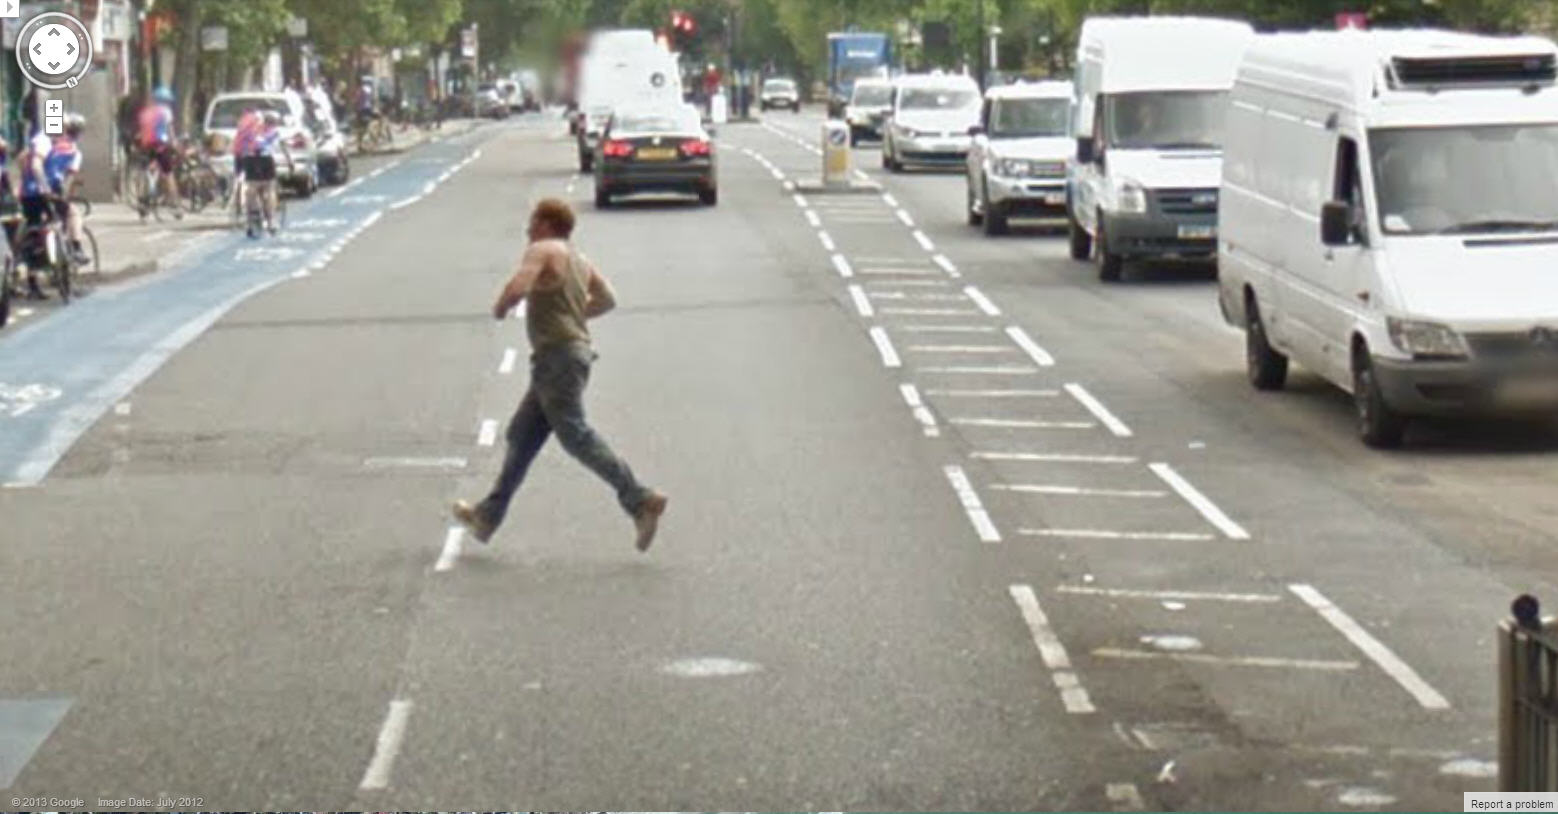 Google Street View Captures a Guy Walking on Air – Literally!